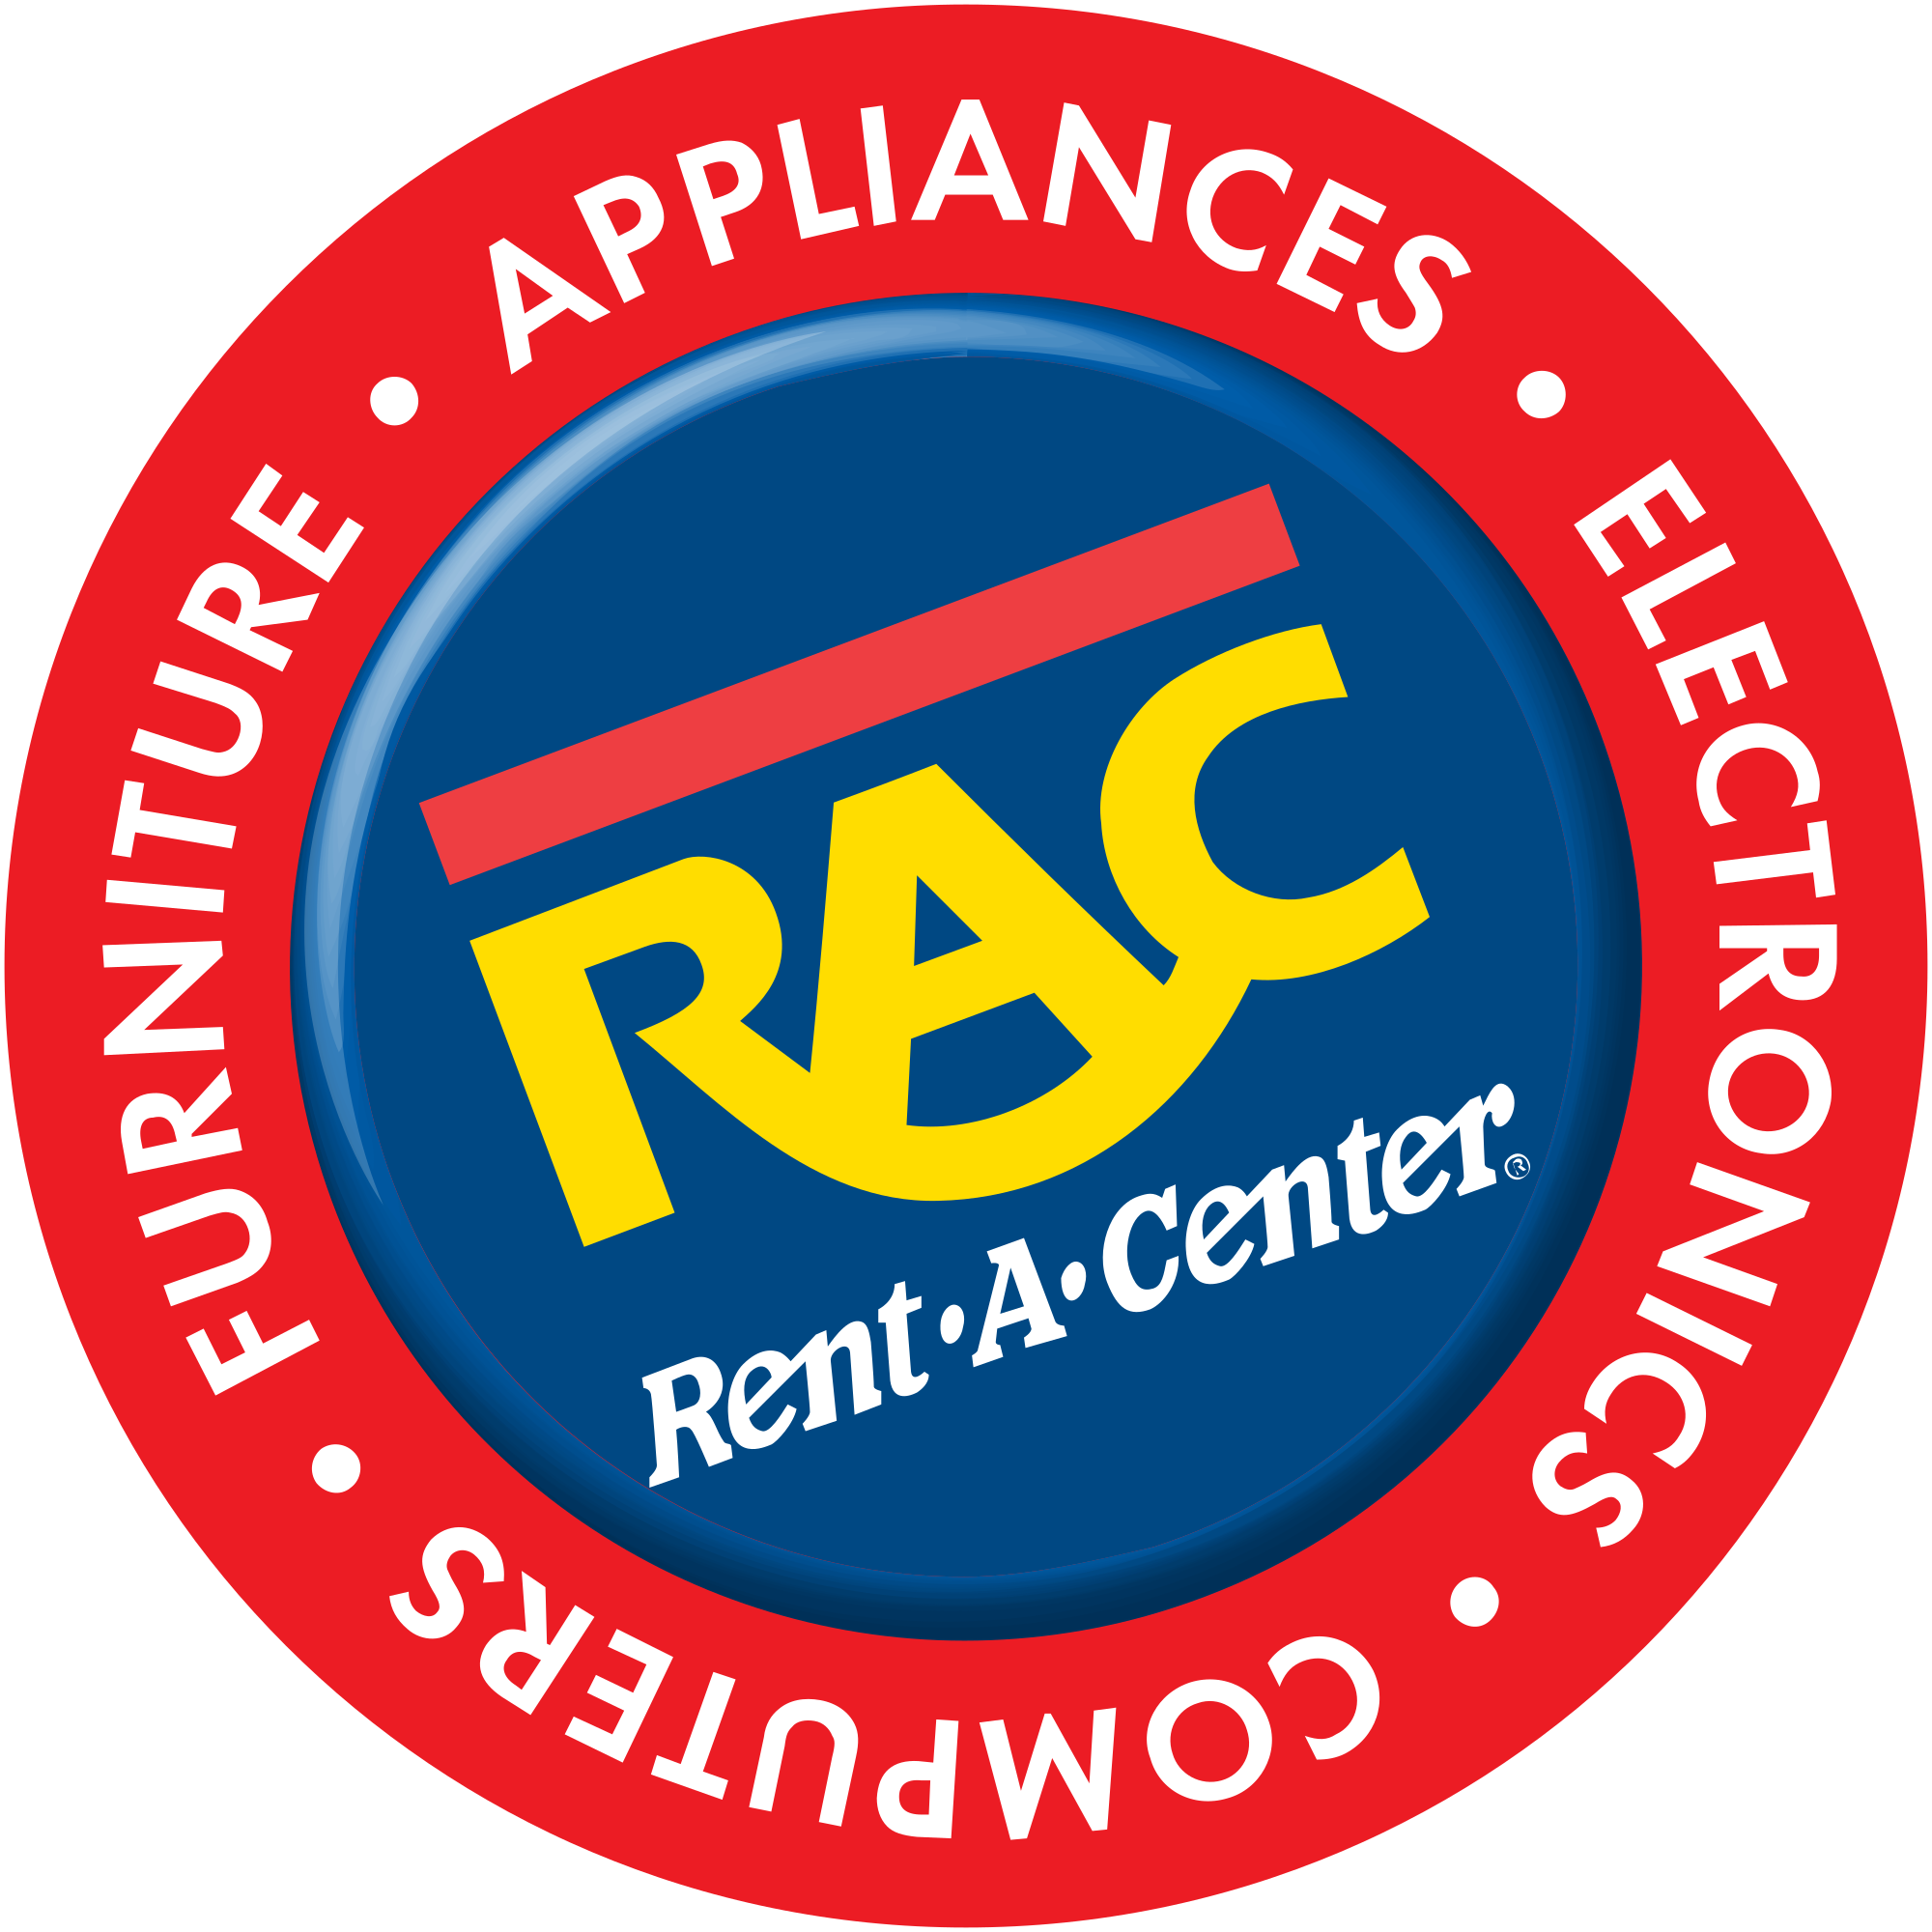 Rent a center logo png. File svg wikimedia commons